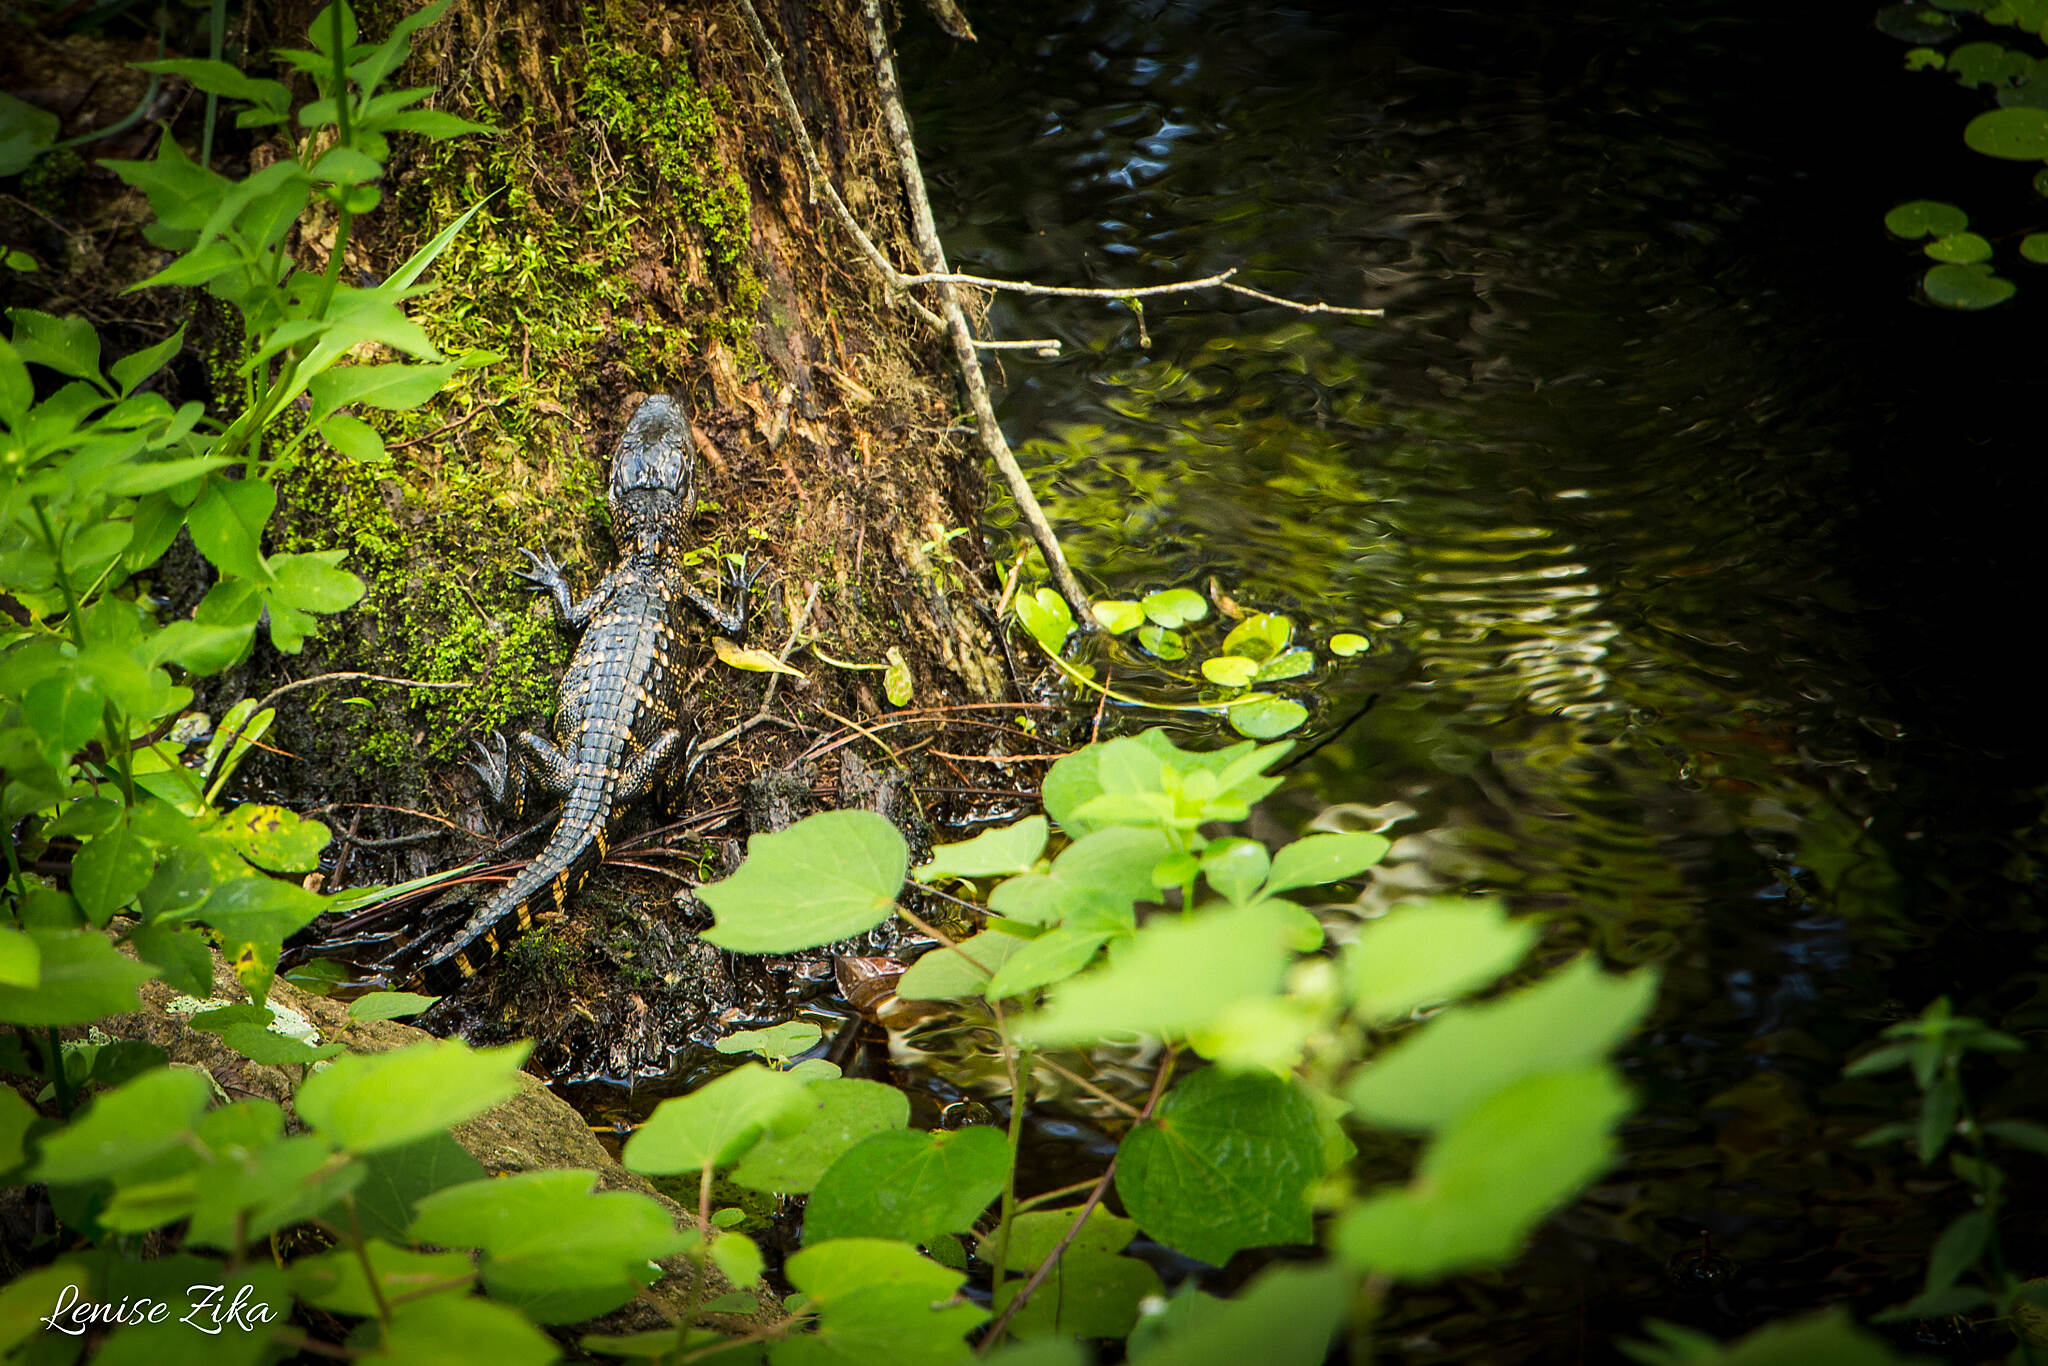 General James A. Van Fleet State Trail Baby Gator You really have to look closely to see who's blending in with their surrounding!